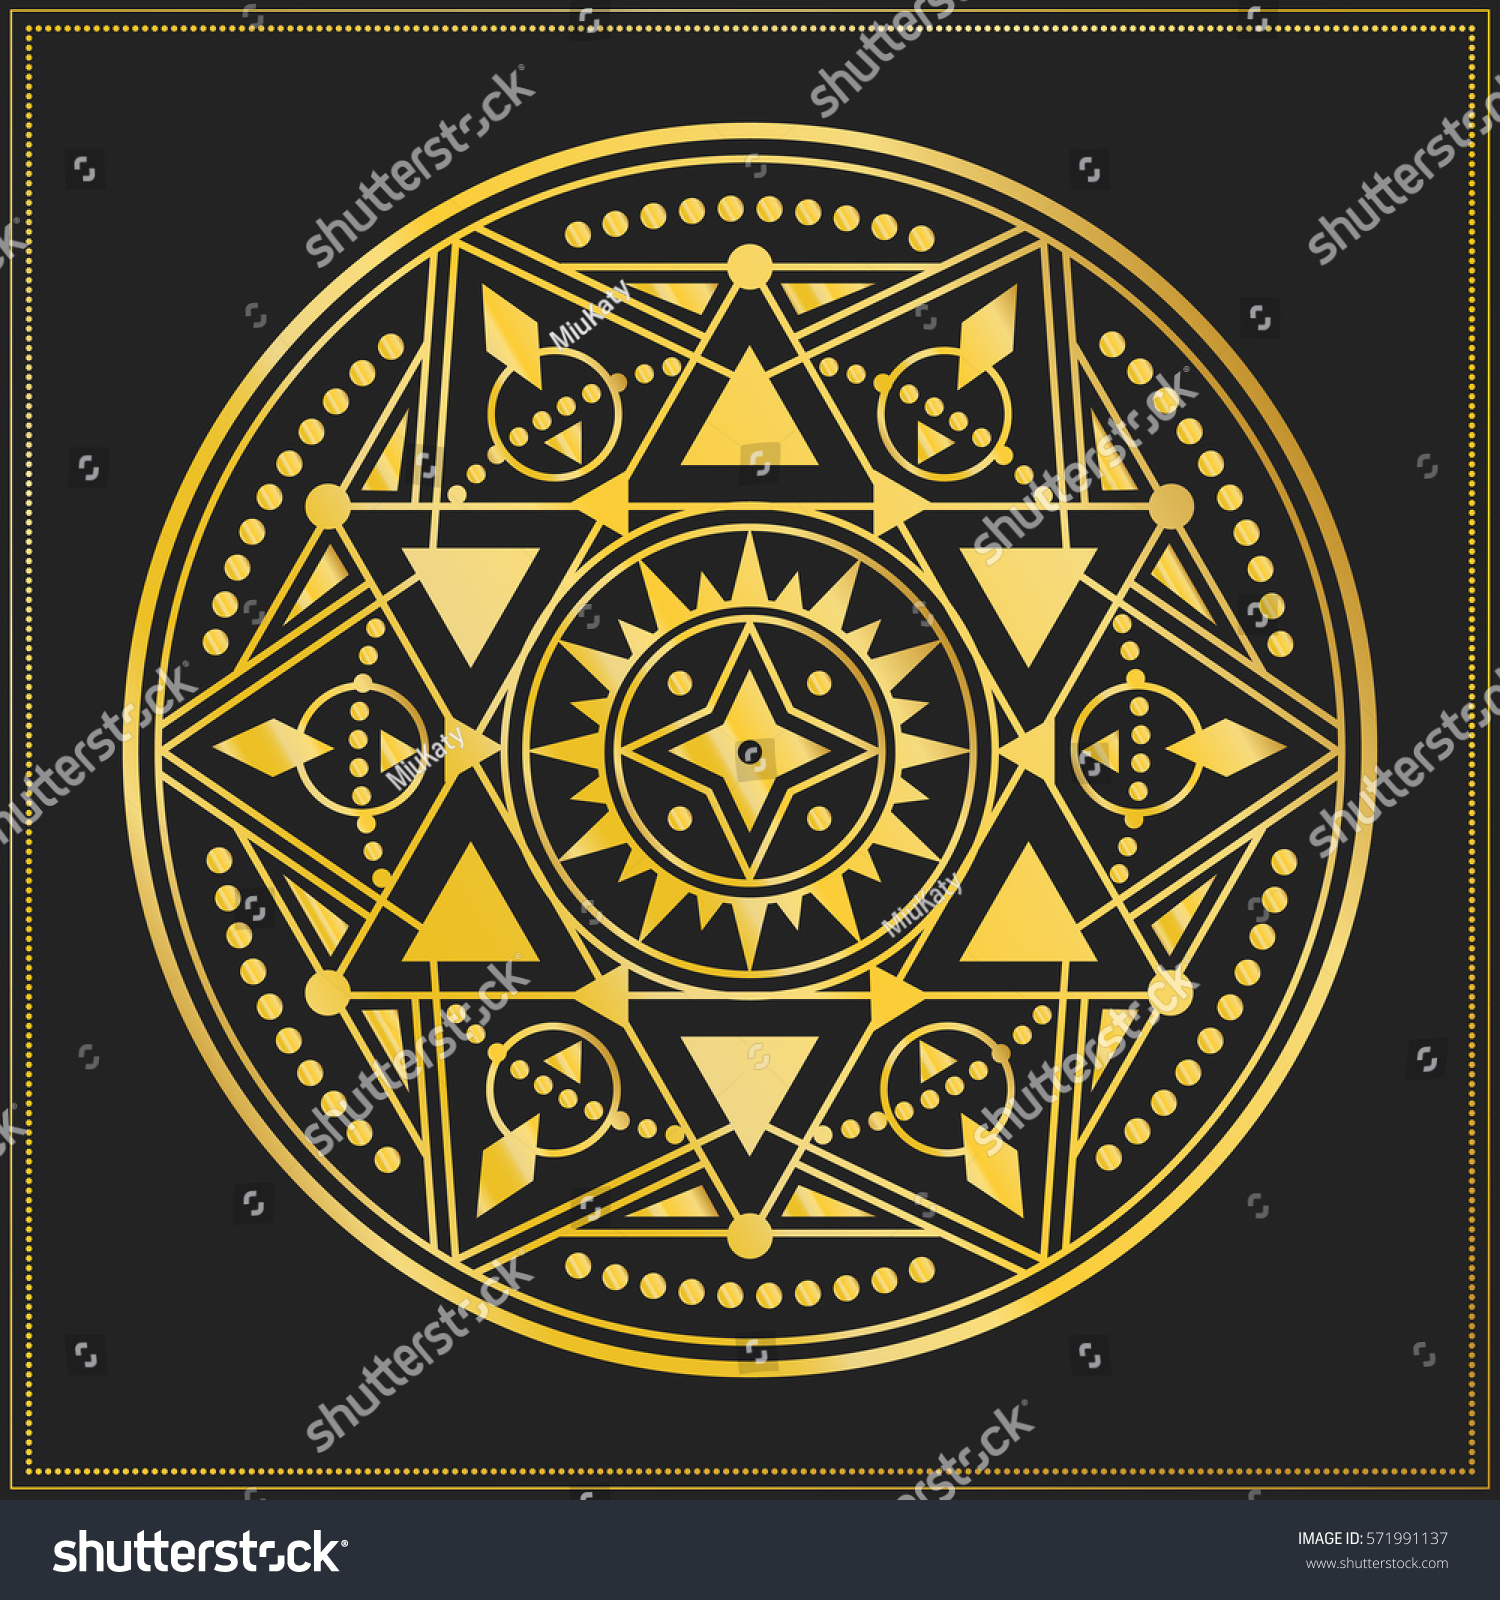 Sacred geometry symbol star alchemy astrology stock vector sacred geometry symbol with star alchemy or astrology esoteric or mystic circle print biocorpaavc Images